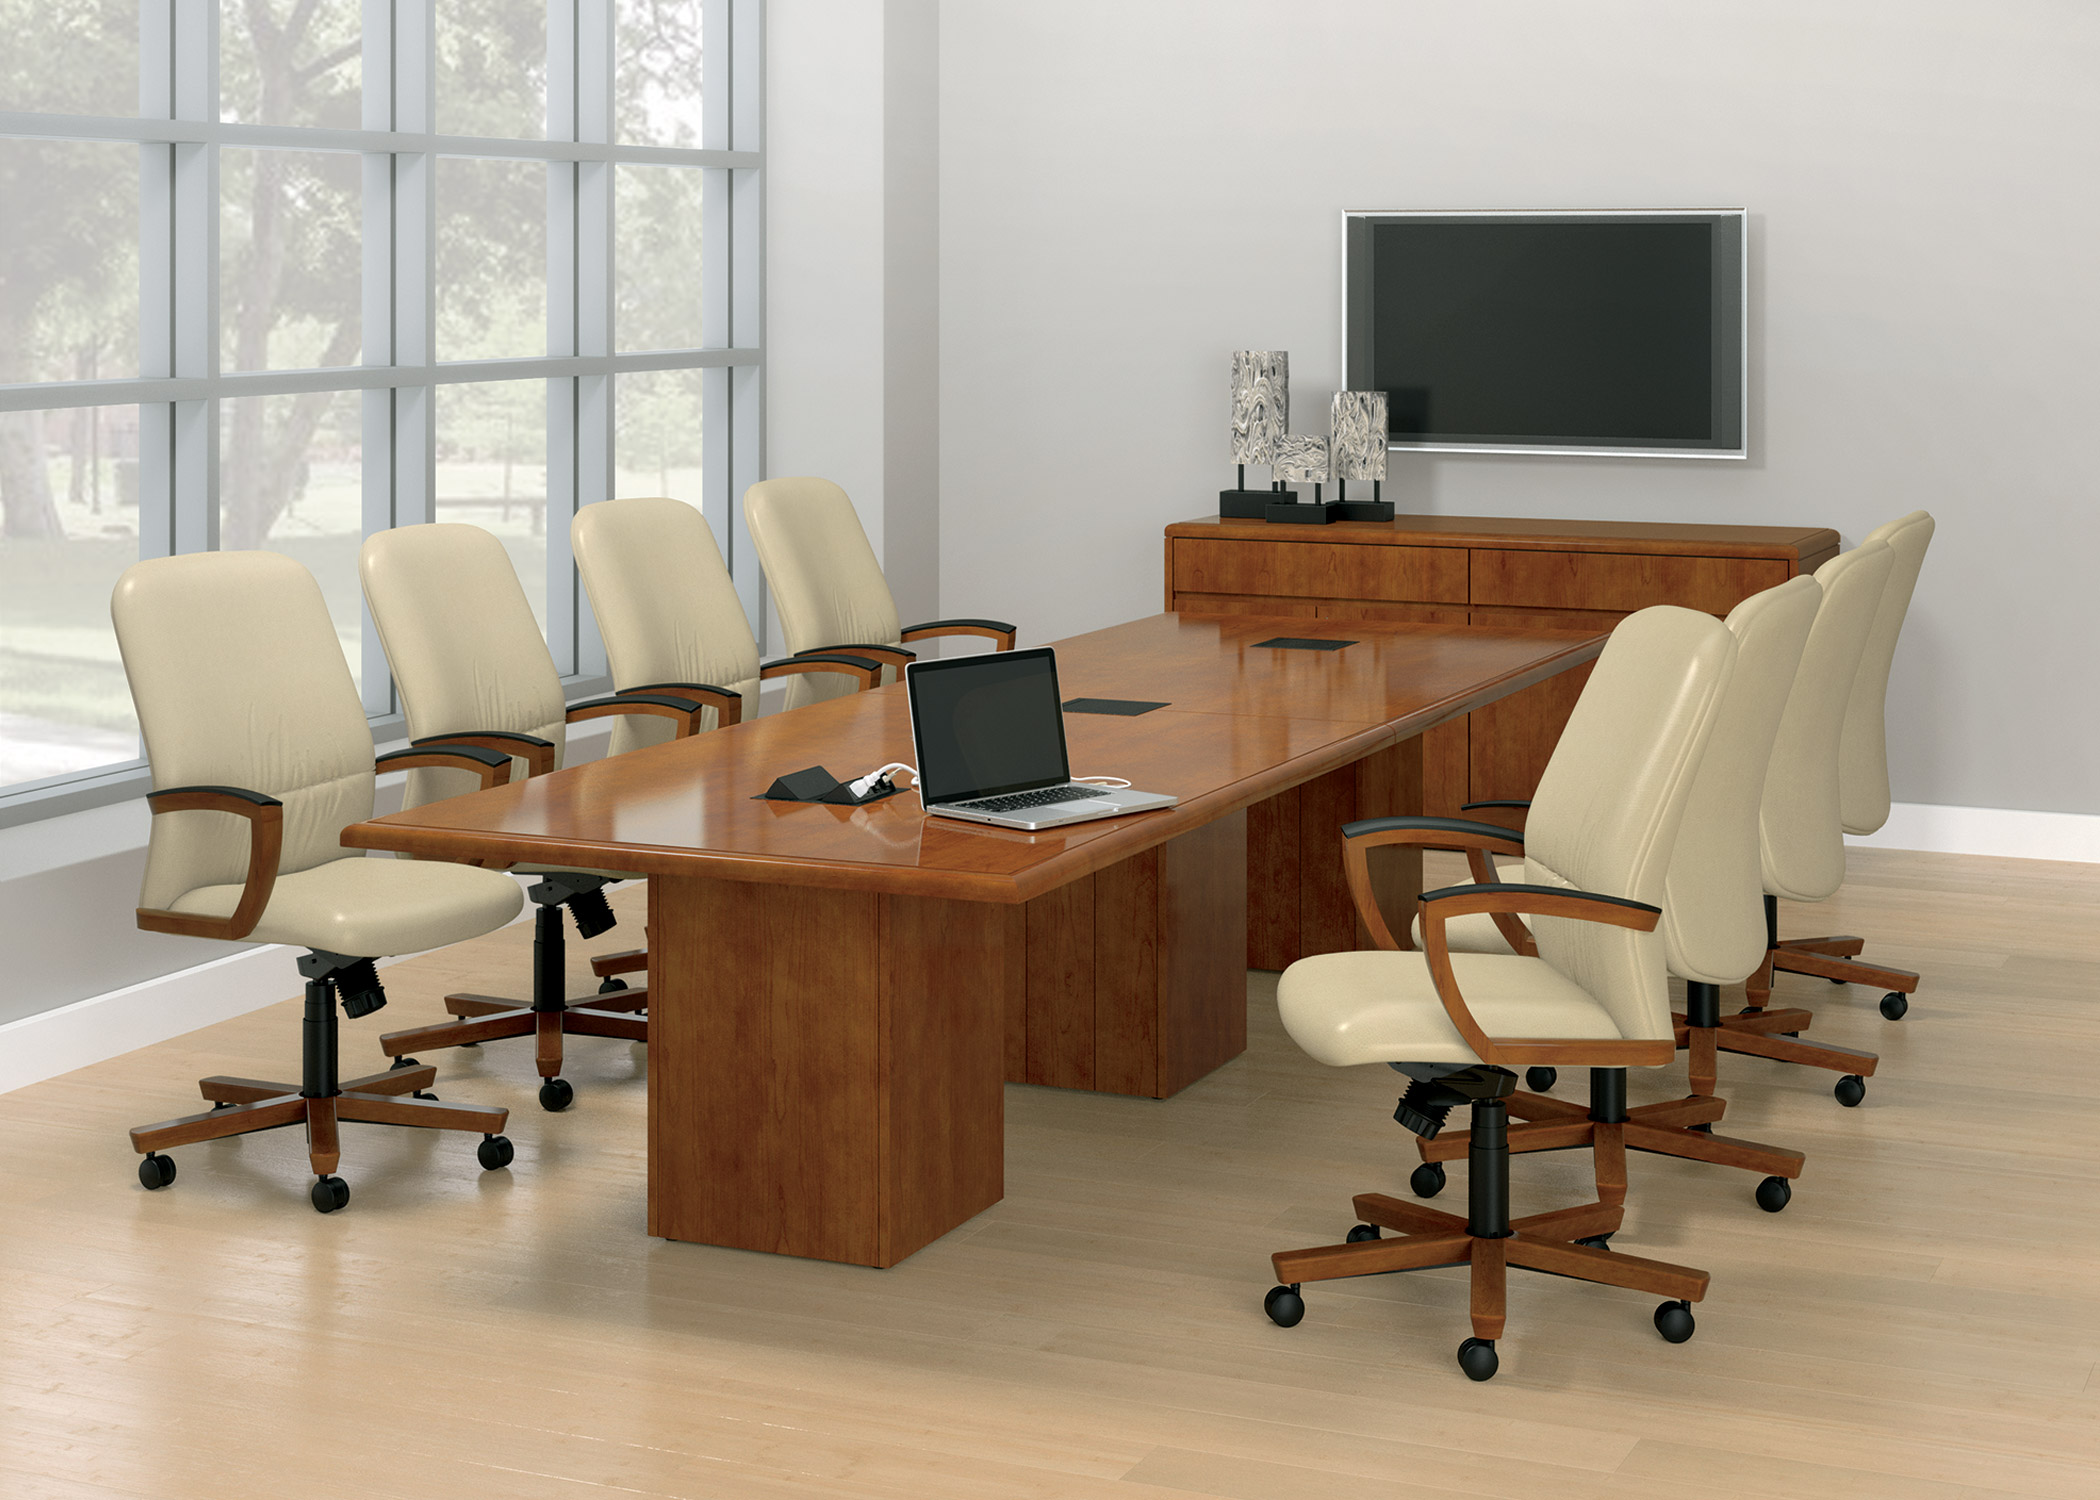 Conference Room Tables Styles To Choose From Ubiq - Conference national table